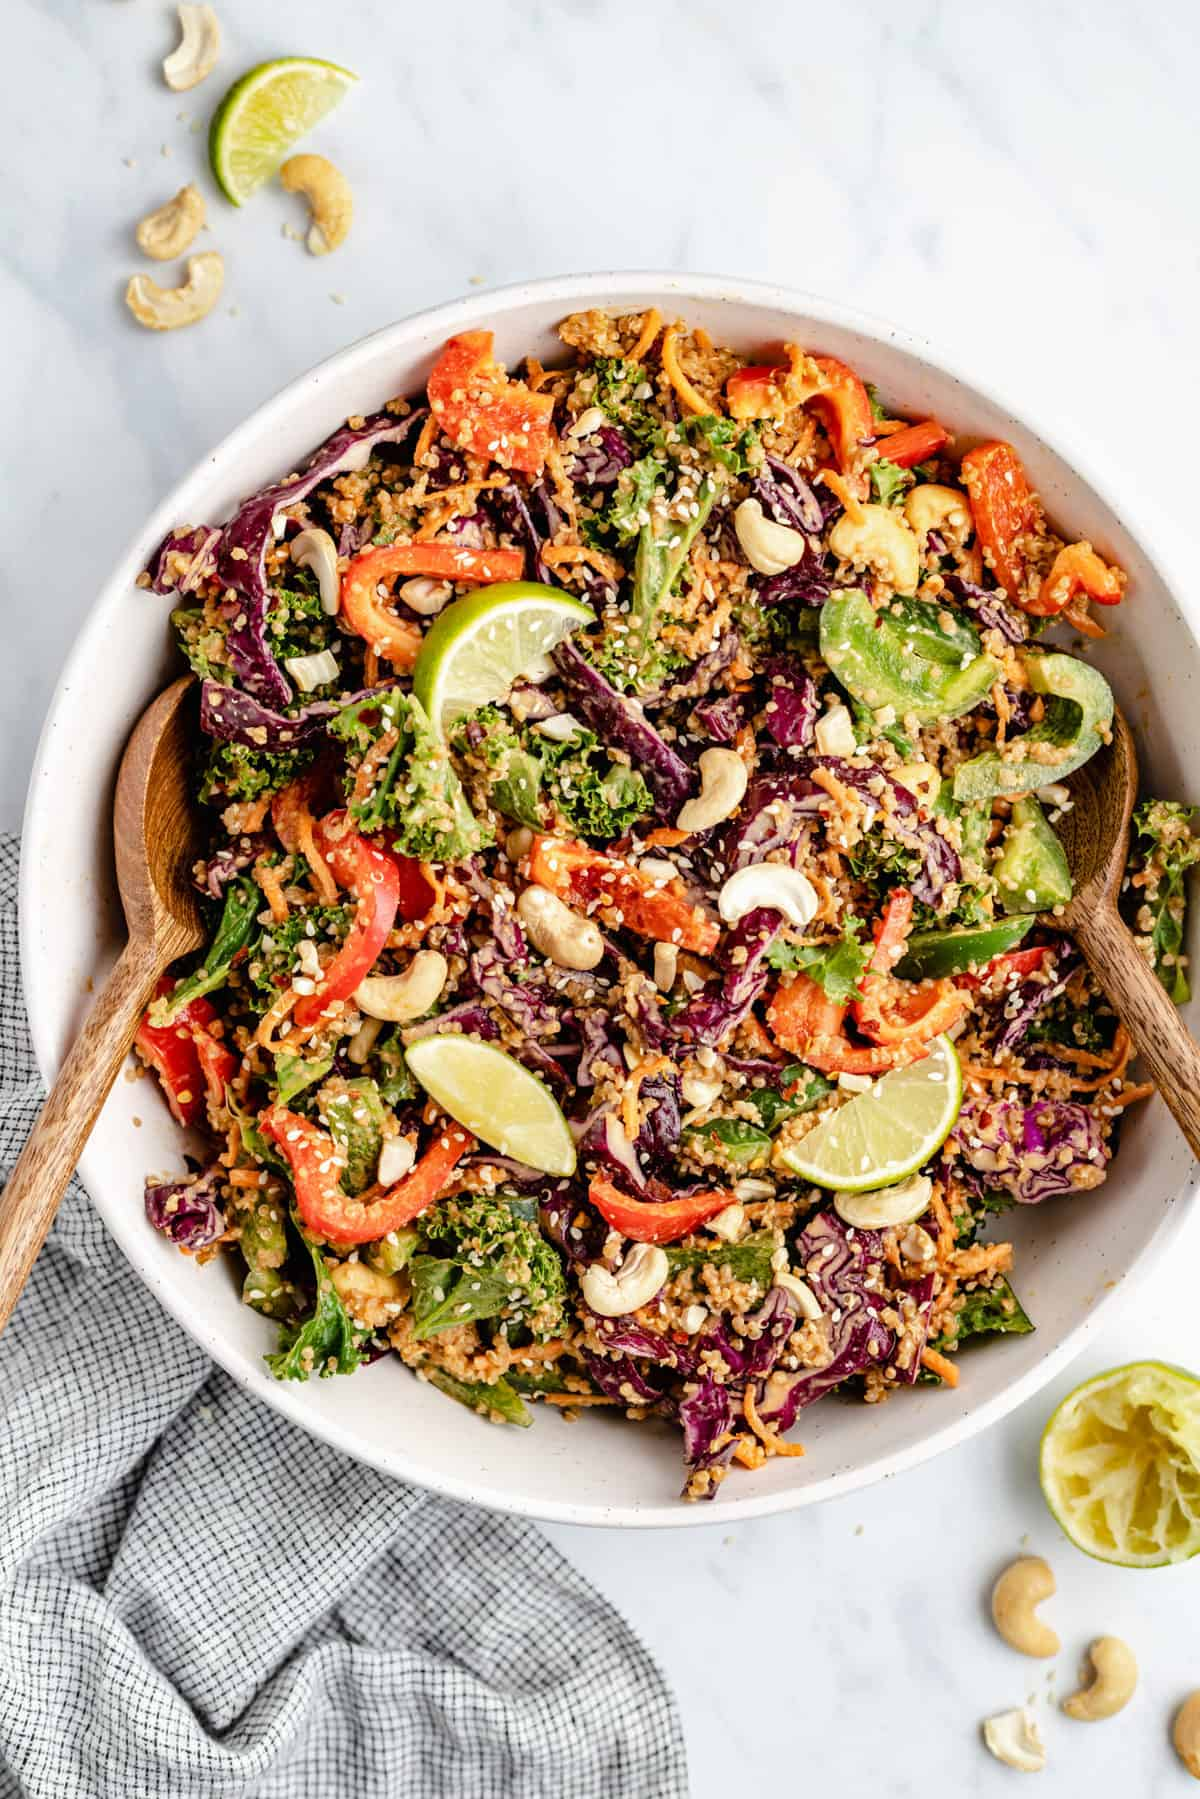 Cashew Thai quinoa salad in a white serving bowl with wooden serving spoons